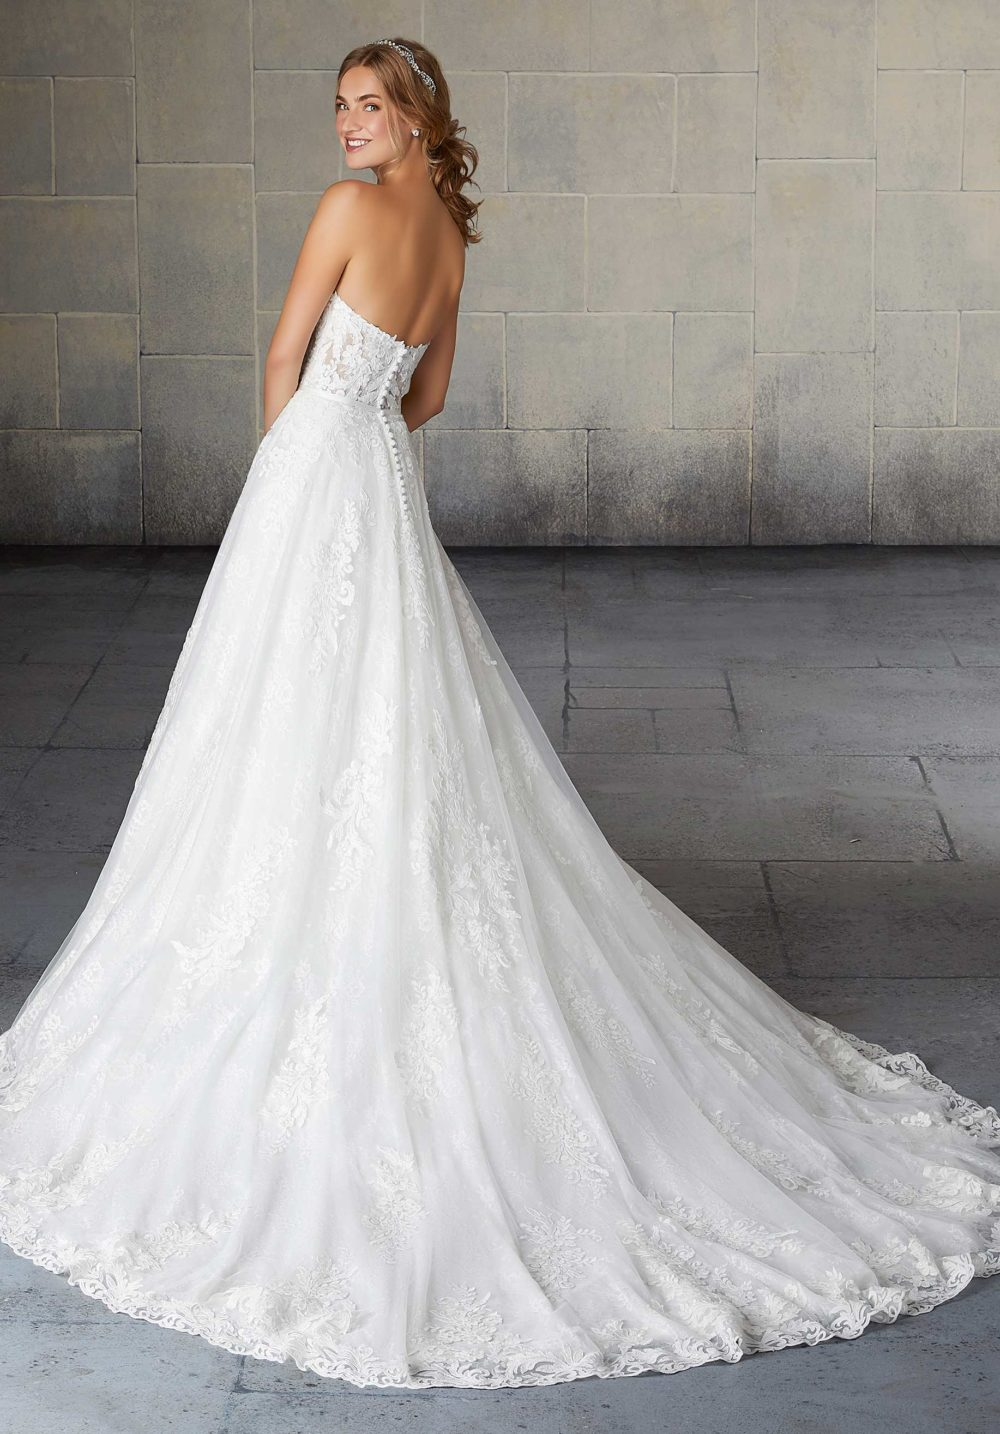 Morilee Wedding Gown Dress style 2132 back